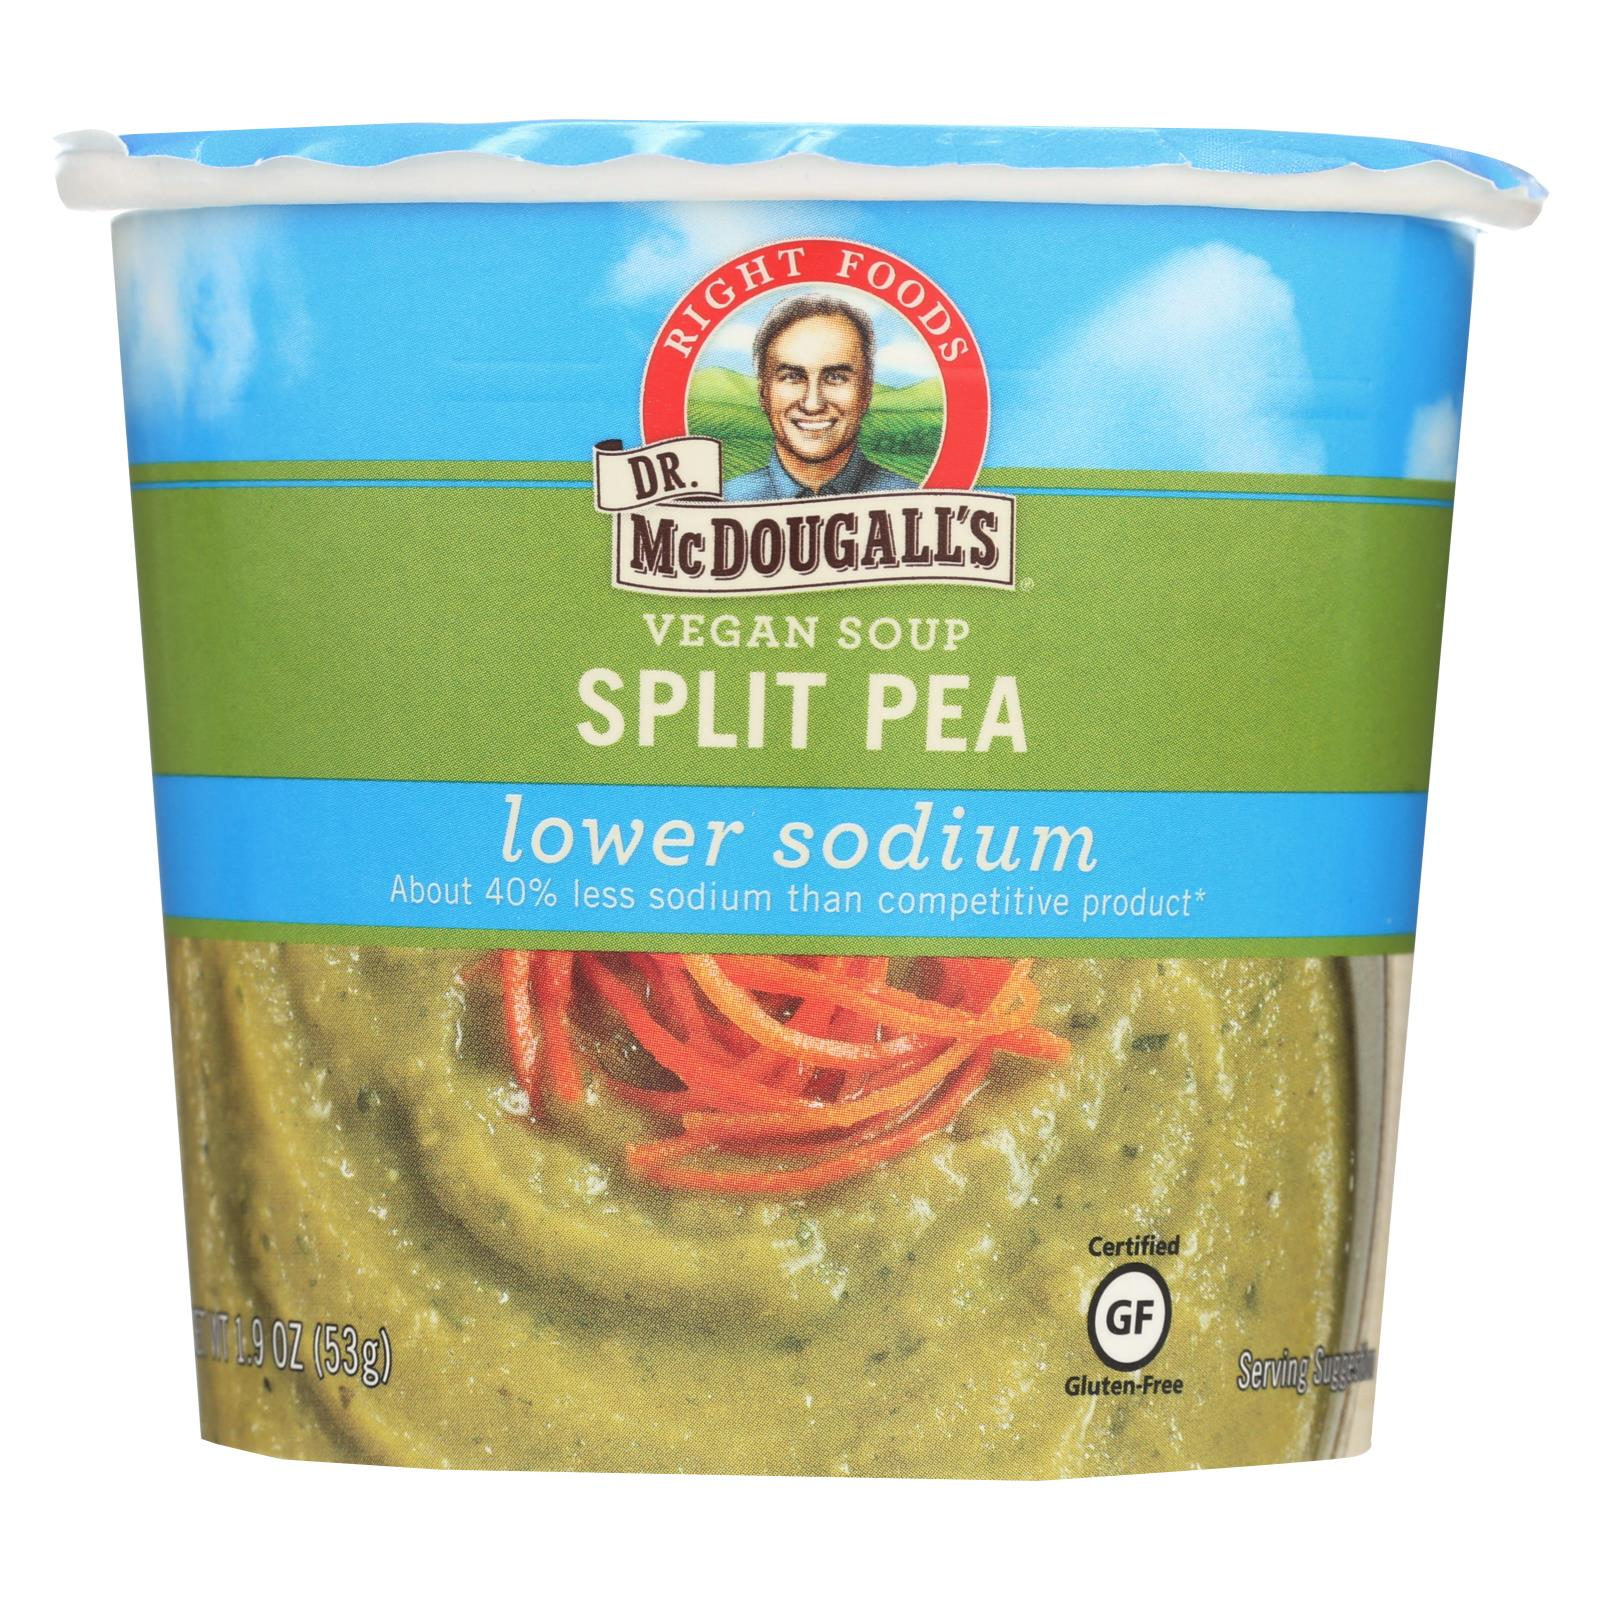 Dr. Mcdougall's Vegan Split Pea Lower Sodium Soup Cup - Case Of 6 - 1.9 Oz. HG0212530